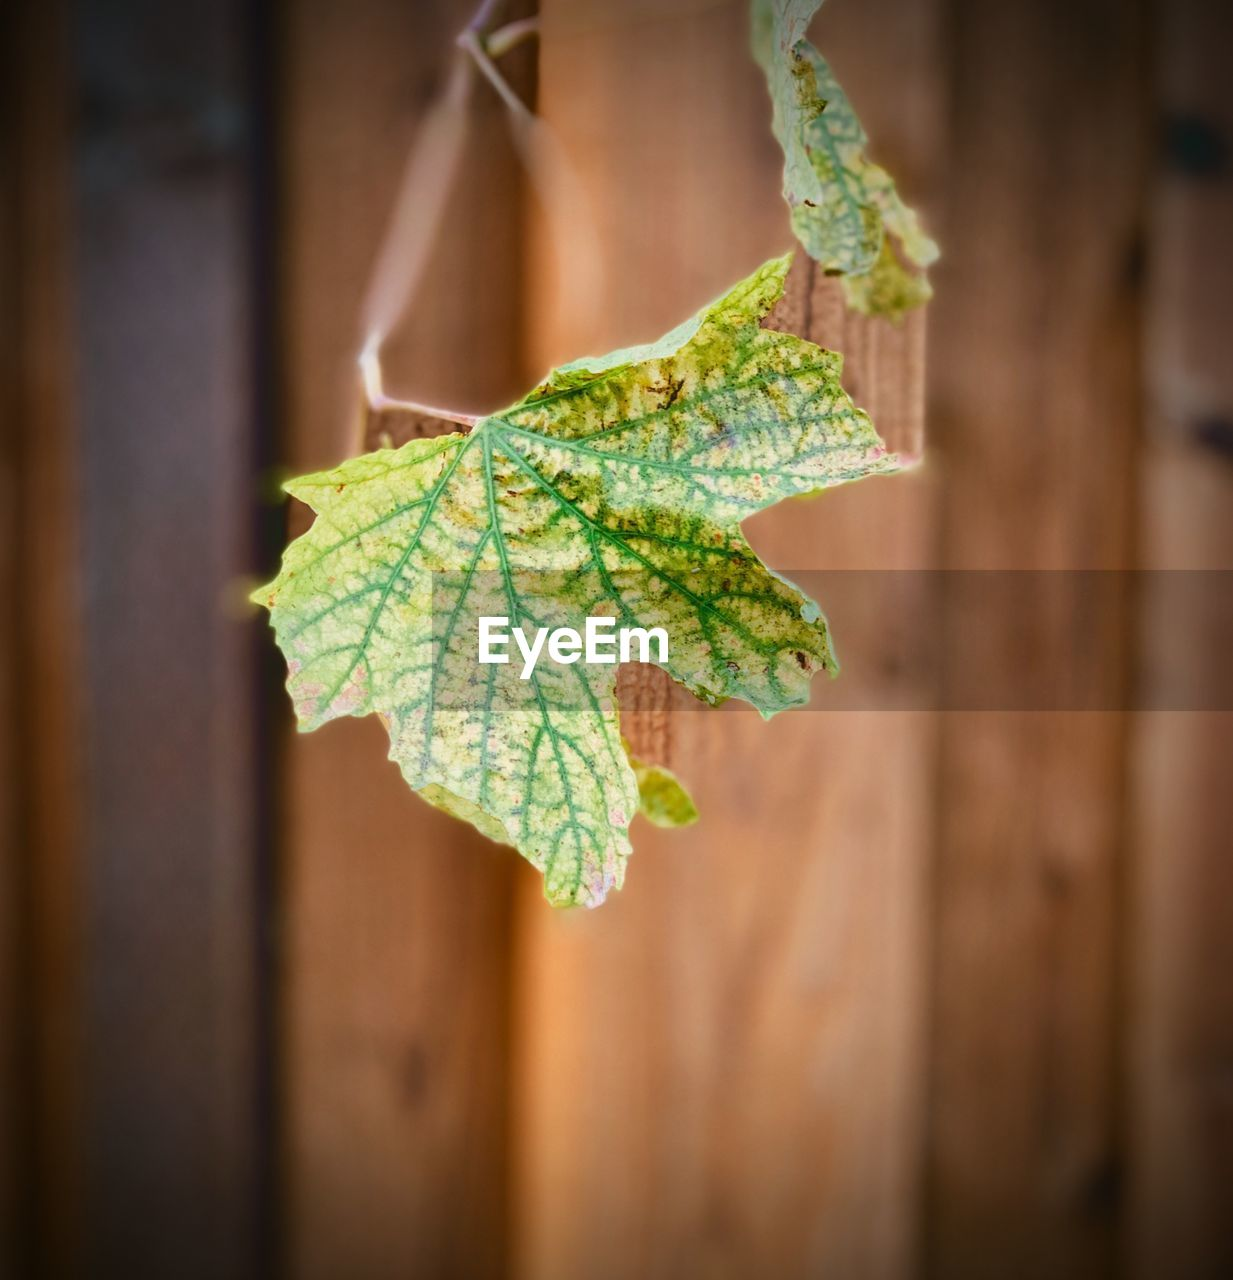 plant part, leaf, green color, close-up, focus on foreground, no people, plant, day, growth, nature, outdoors, selective focus, wood - material, beauty in nature, leaf vein, vulnerability, fragility, leaves, brown, pattern